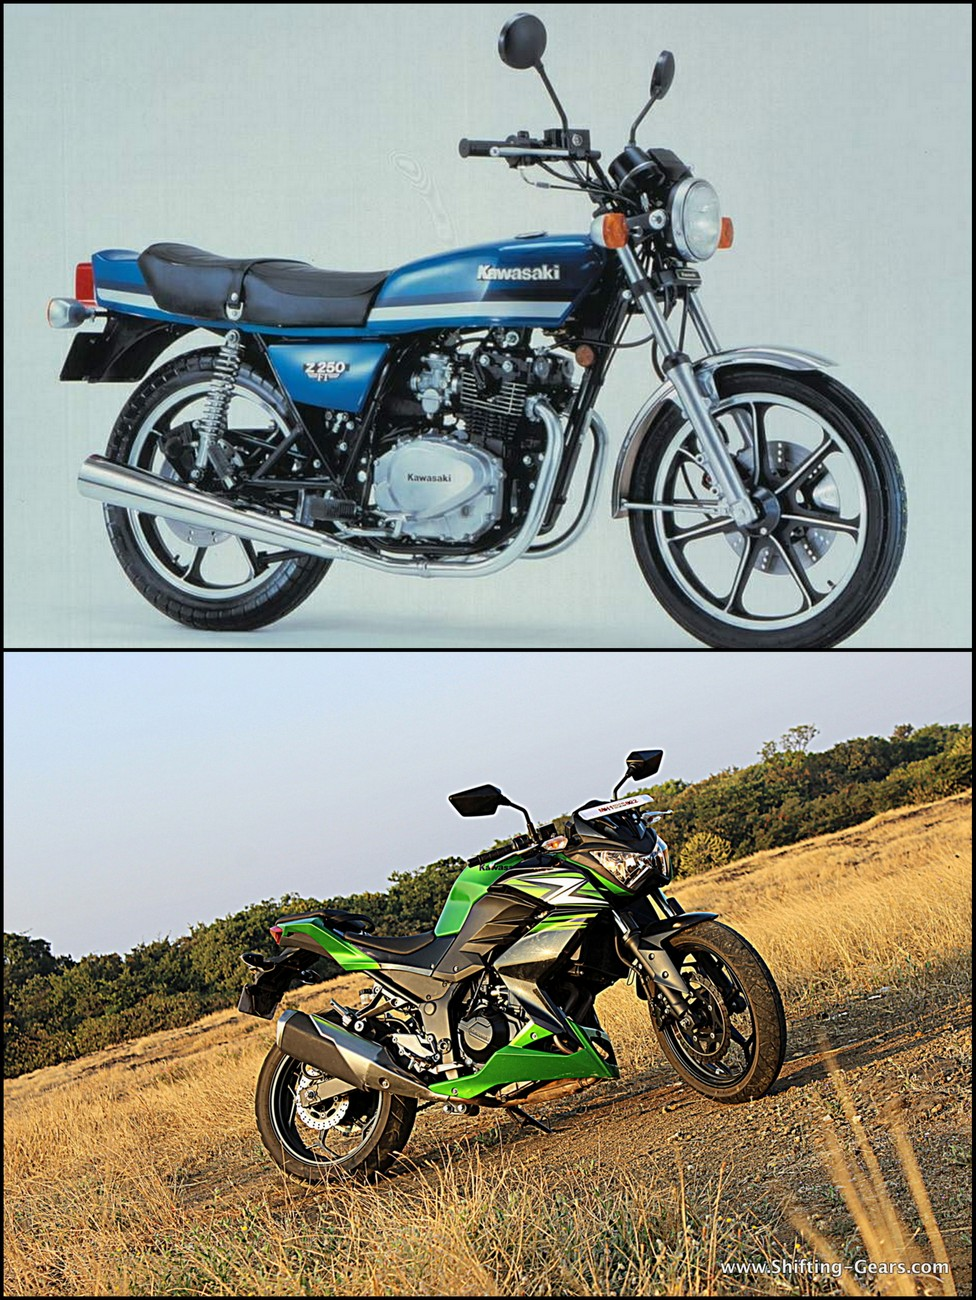 First-generation Kawasaki Z250 (top) with the 2014 Kawasaki Z250 (bottom)